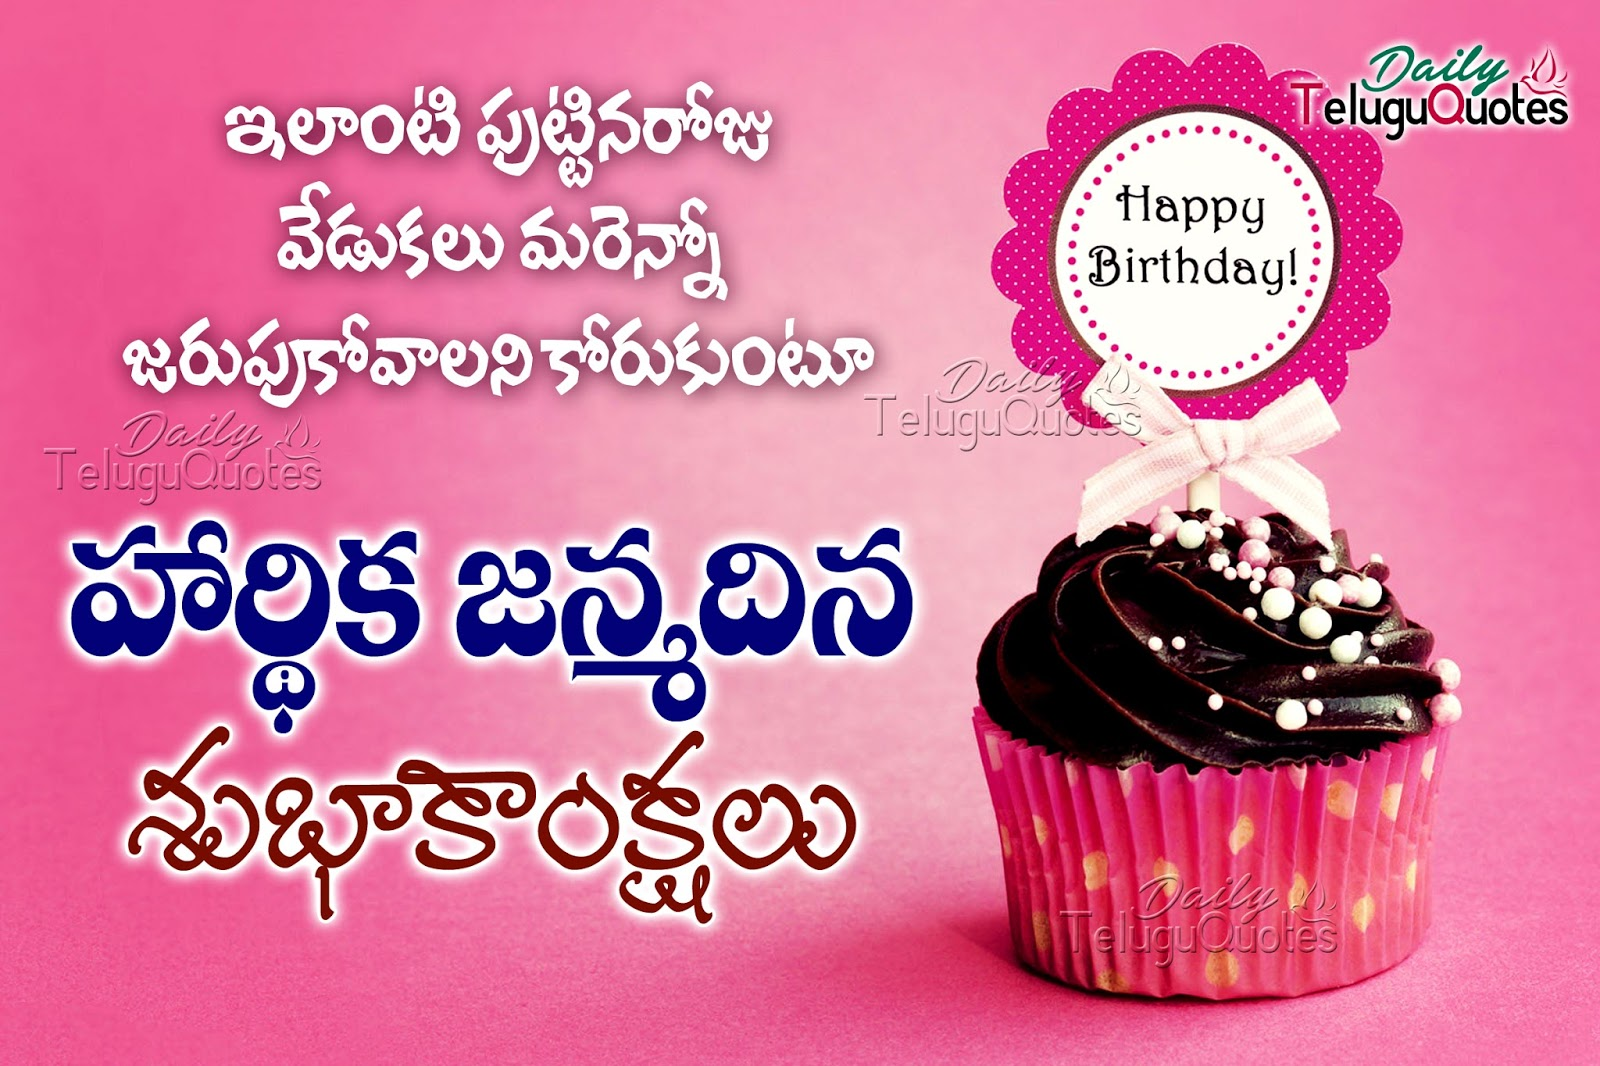 Birthday quotes and greetings in telugu hd wallpapers happy birthday telugu quotes images pictures wallpapers photos m4hsunfo